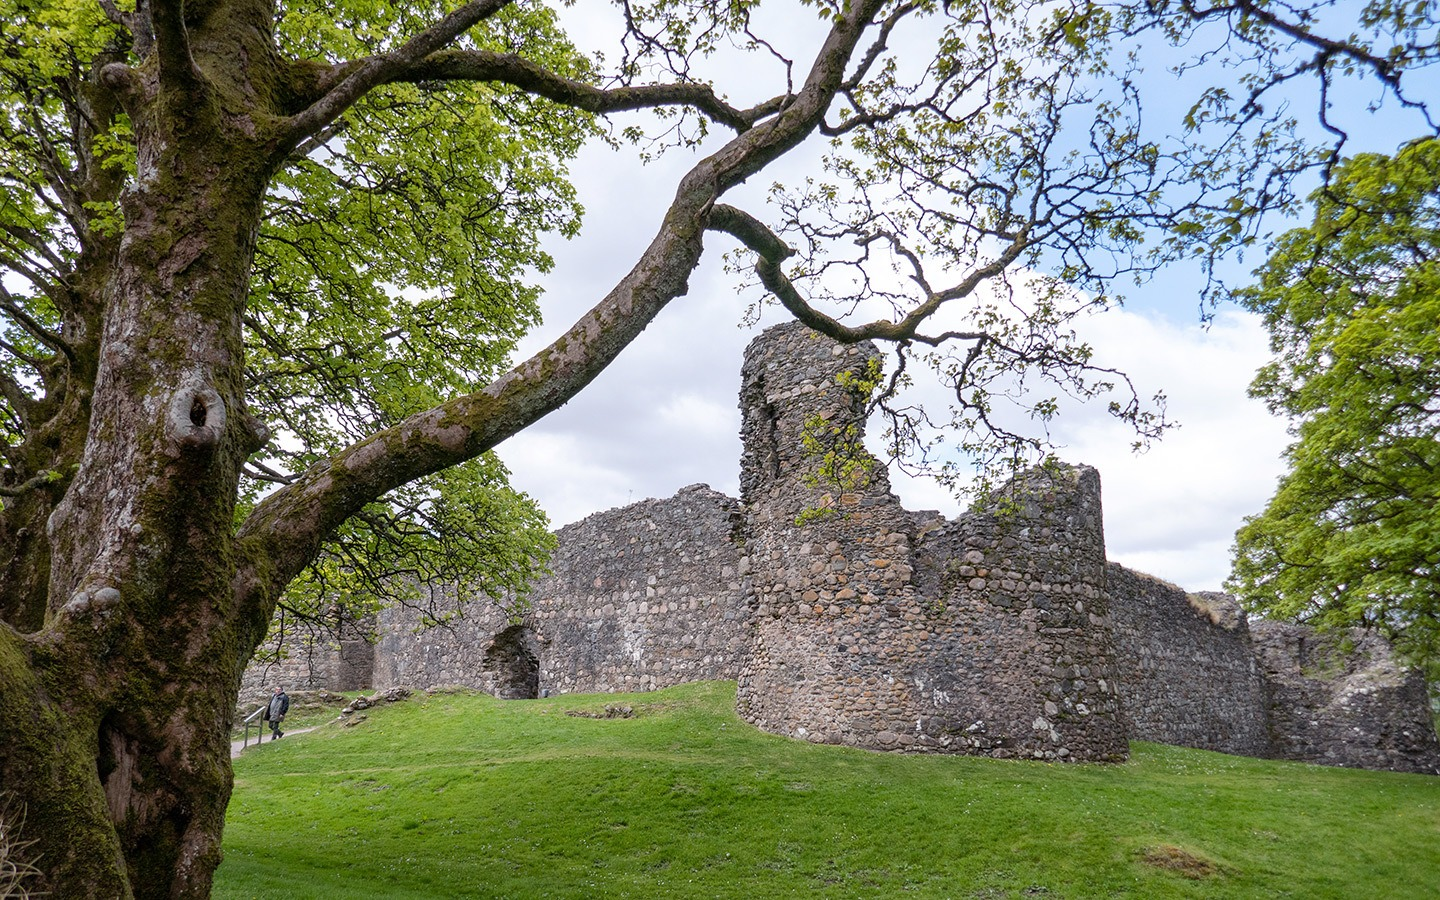 The ruins of Old Inverlochy Castle near Fort William in Scotland